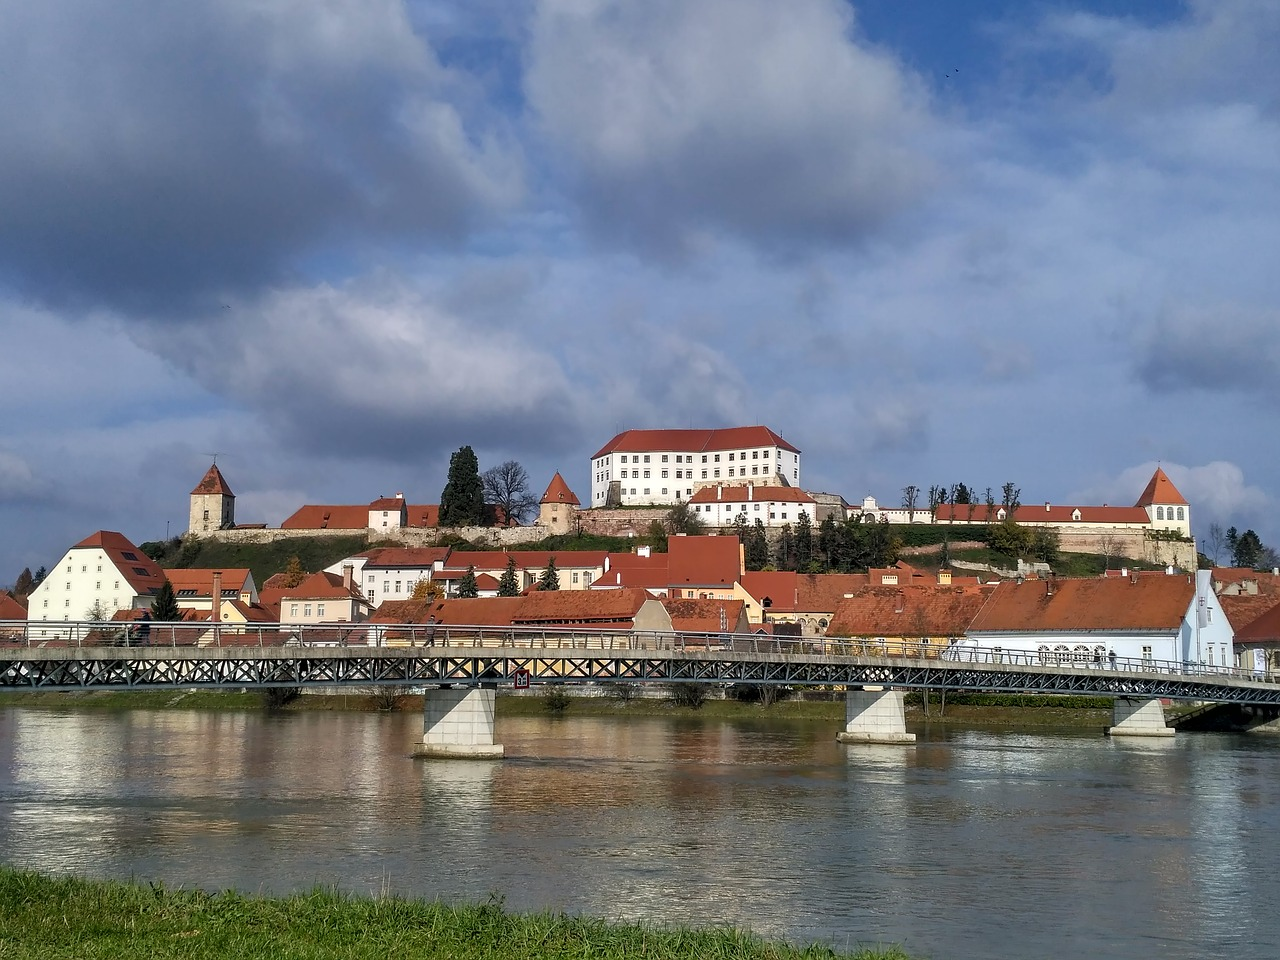 October 19: Private tour to Maribor, Ptuj and Zice Cartesian Monaster - Your adventure will begin at 8:30am where you will be picked up by your driver at your hotel and head to the historic town of Maribor.On the Drava Plain, surrounded by thermal springs, flourishing fields and vineyards, lies Ptuj, the oldest Slovenian town. Its lovely present appearance originates from Middle ages with the beautiful medieval Castle above. For centuries, the fort acted as a guardian for the town below, now it invites visitors with its picturesque appearance.Maribor is the second biggest city in Slovenia, but was also crowned the European Capital of Culture in 2012. Spontaneous and relaxed, the attractive city of Maribor has a lot to offer: from gothic and neoromantic architecture to the romantic Lent river bank.In Zice lies a very healthy Carthusian monastery, the first of its kind on then German soil and one of the first apothecaries in Slovenia.